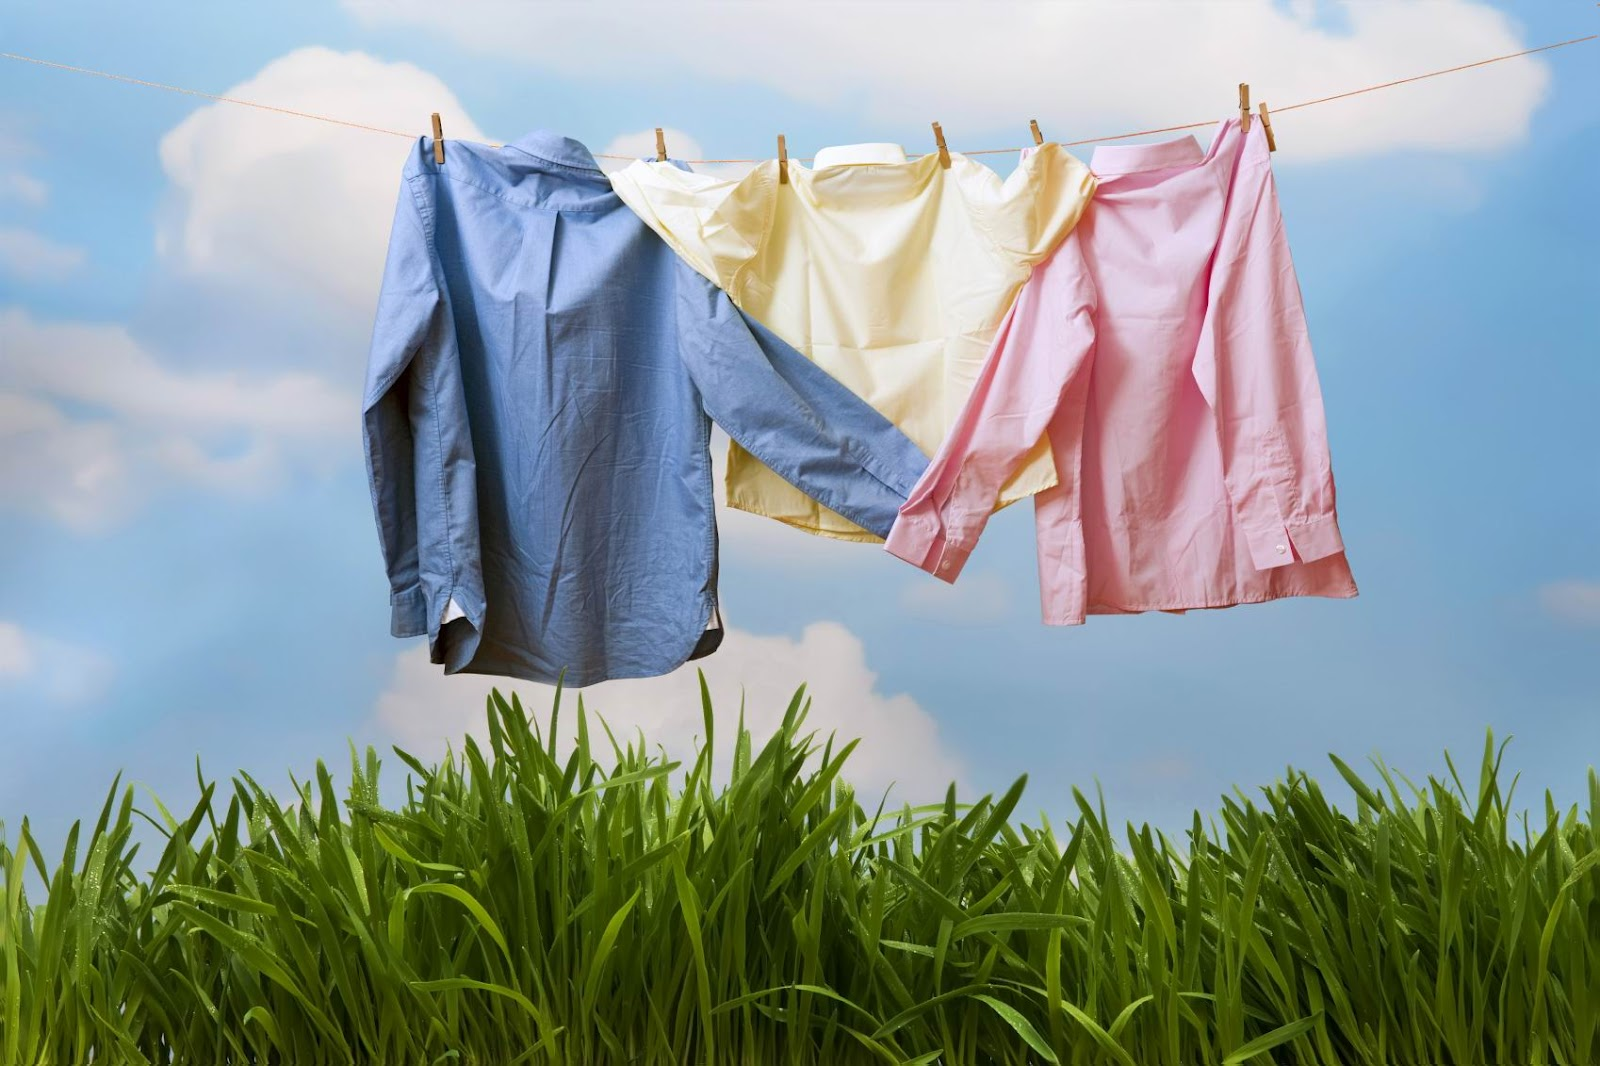 May 07,  · You can use the dry cleaning kit on dark items such as jeans, to prevent them from fading and prevent the color from bleeding onto other clothes when you wash them in the washing machine. Inspect the clothing before placing the items into the dryer bag%().